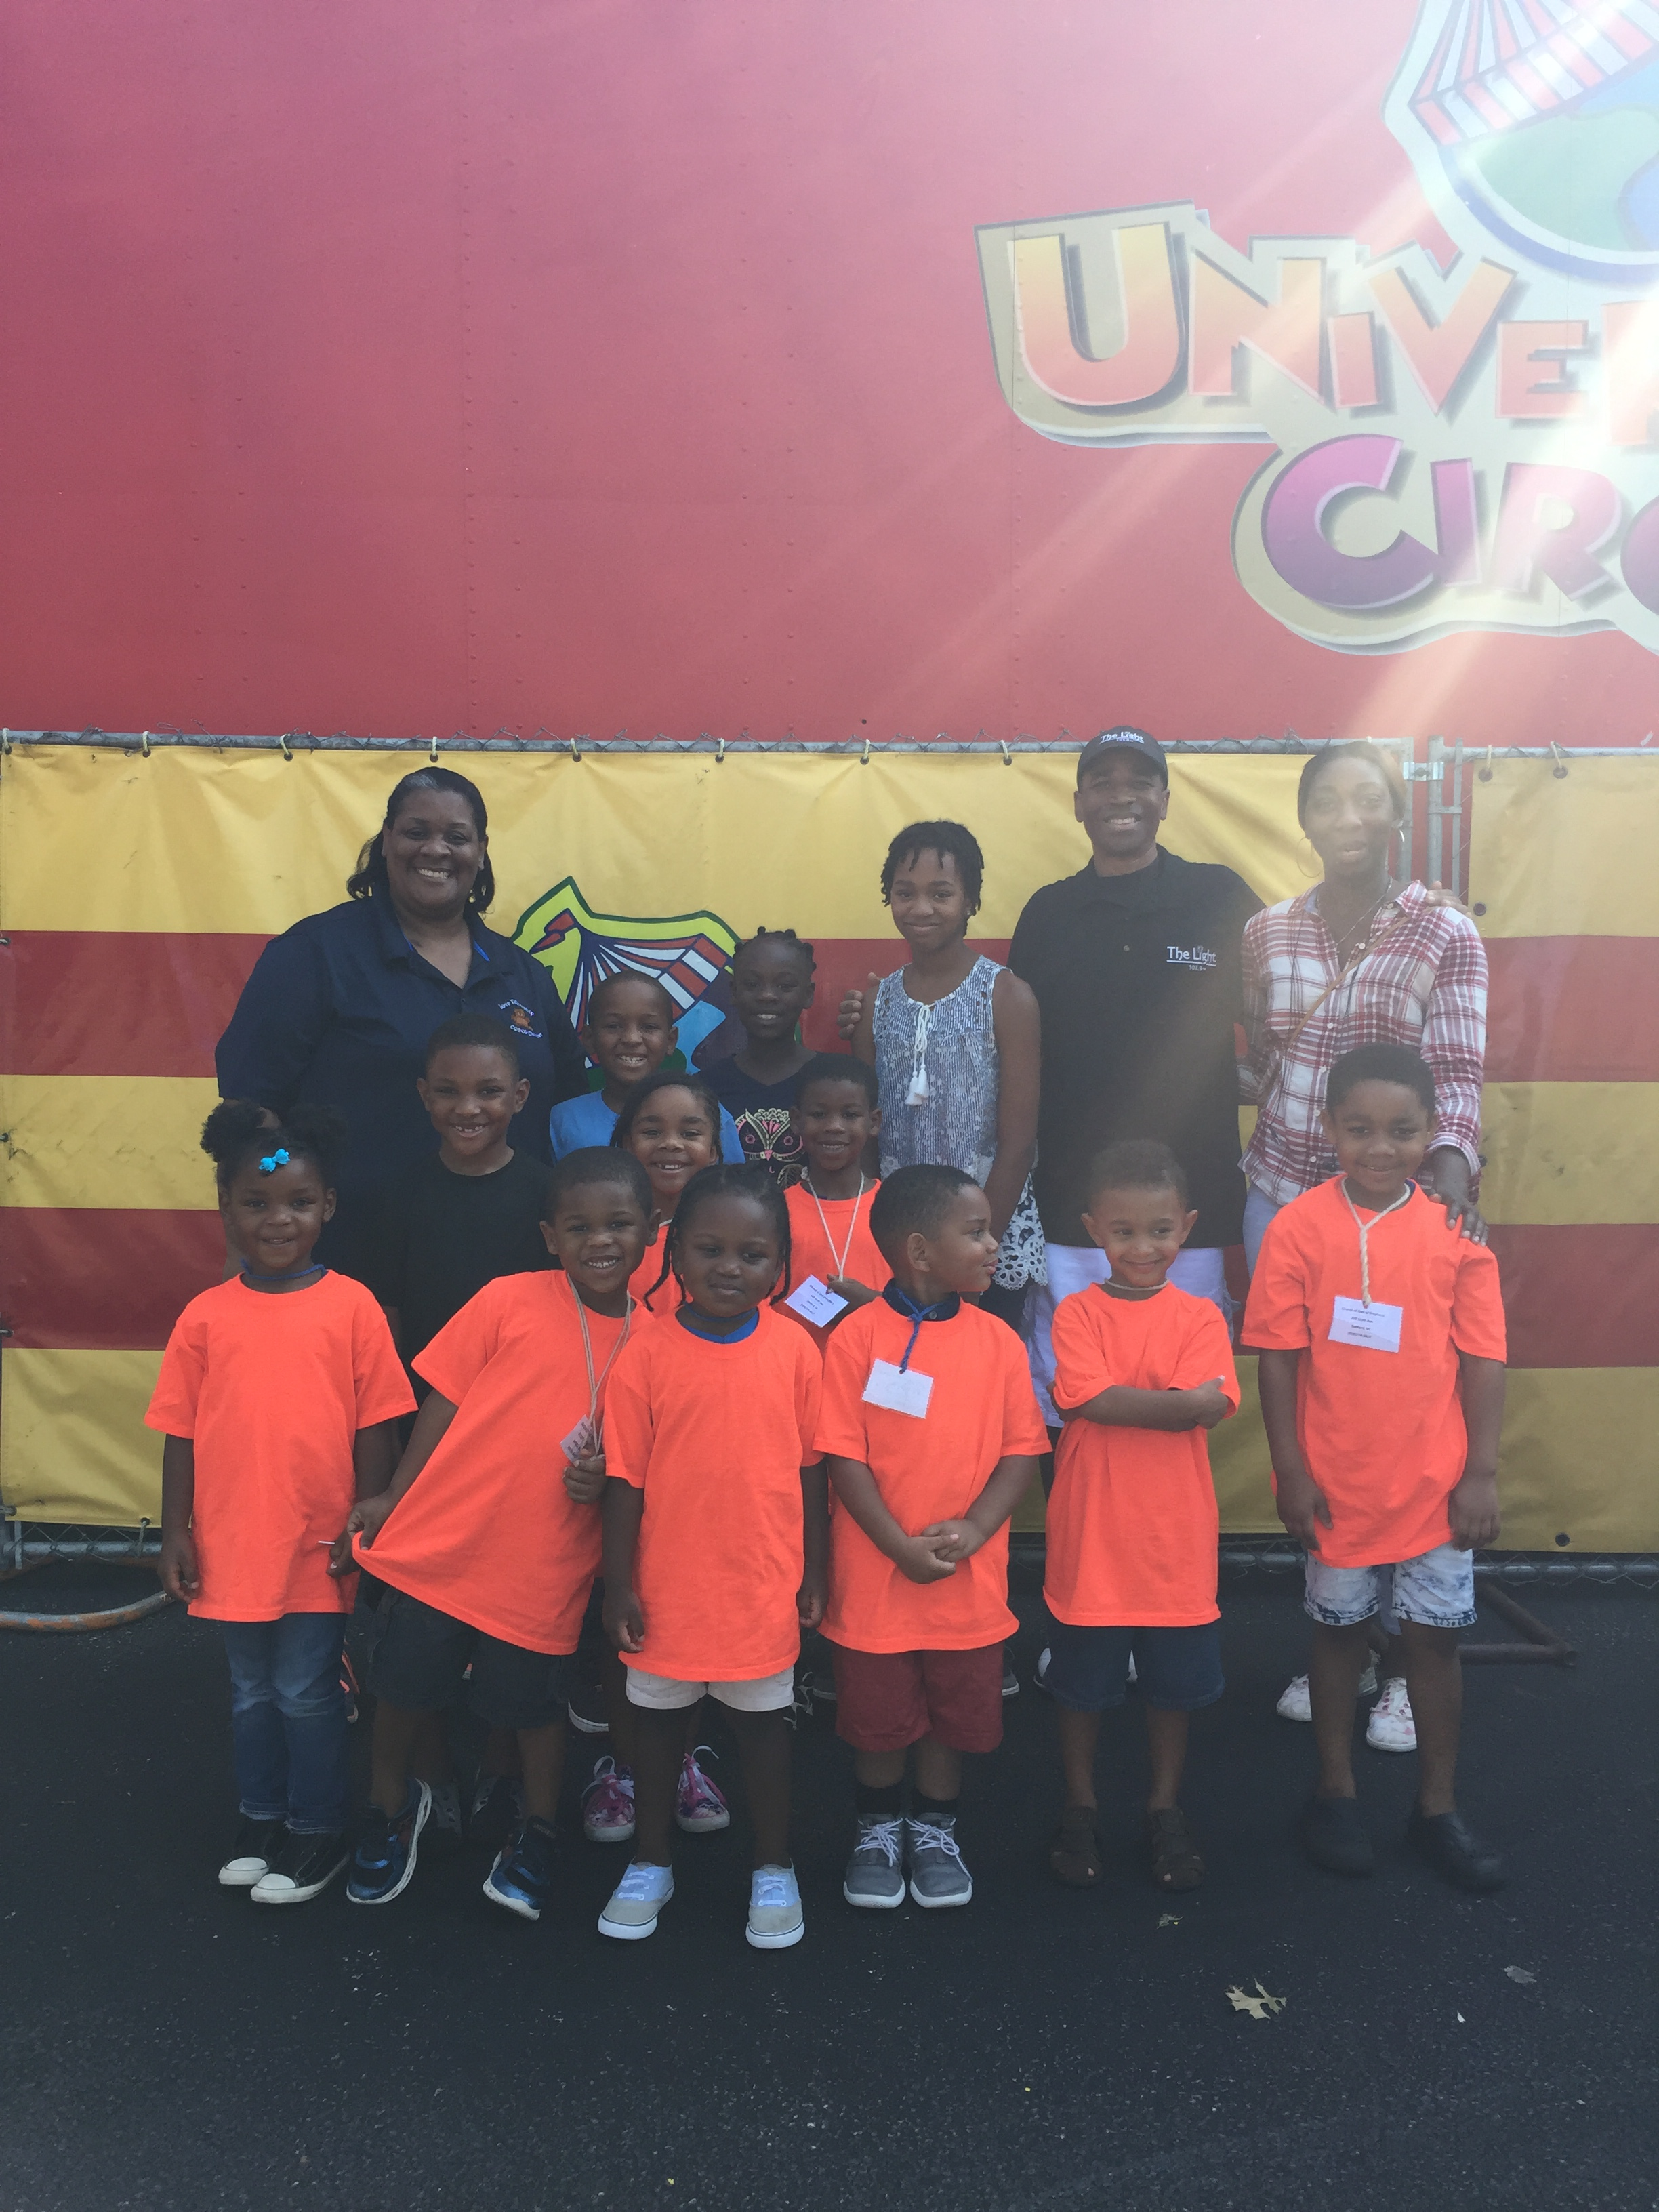 UniverSoul Circus - The Light